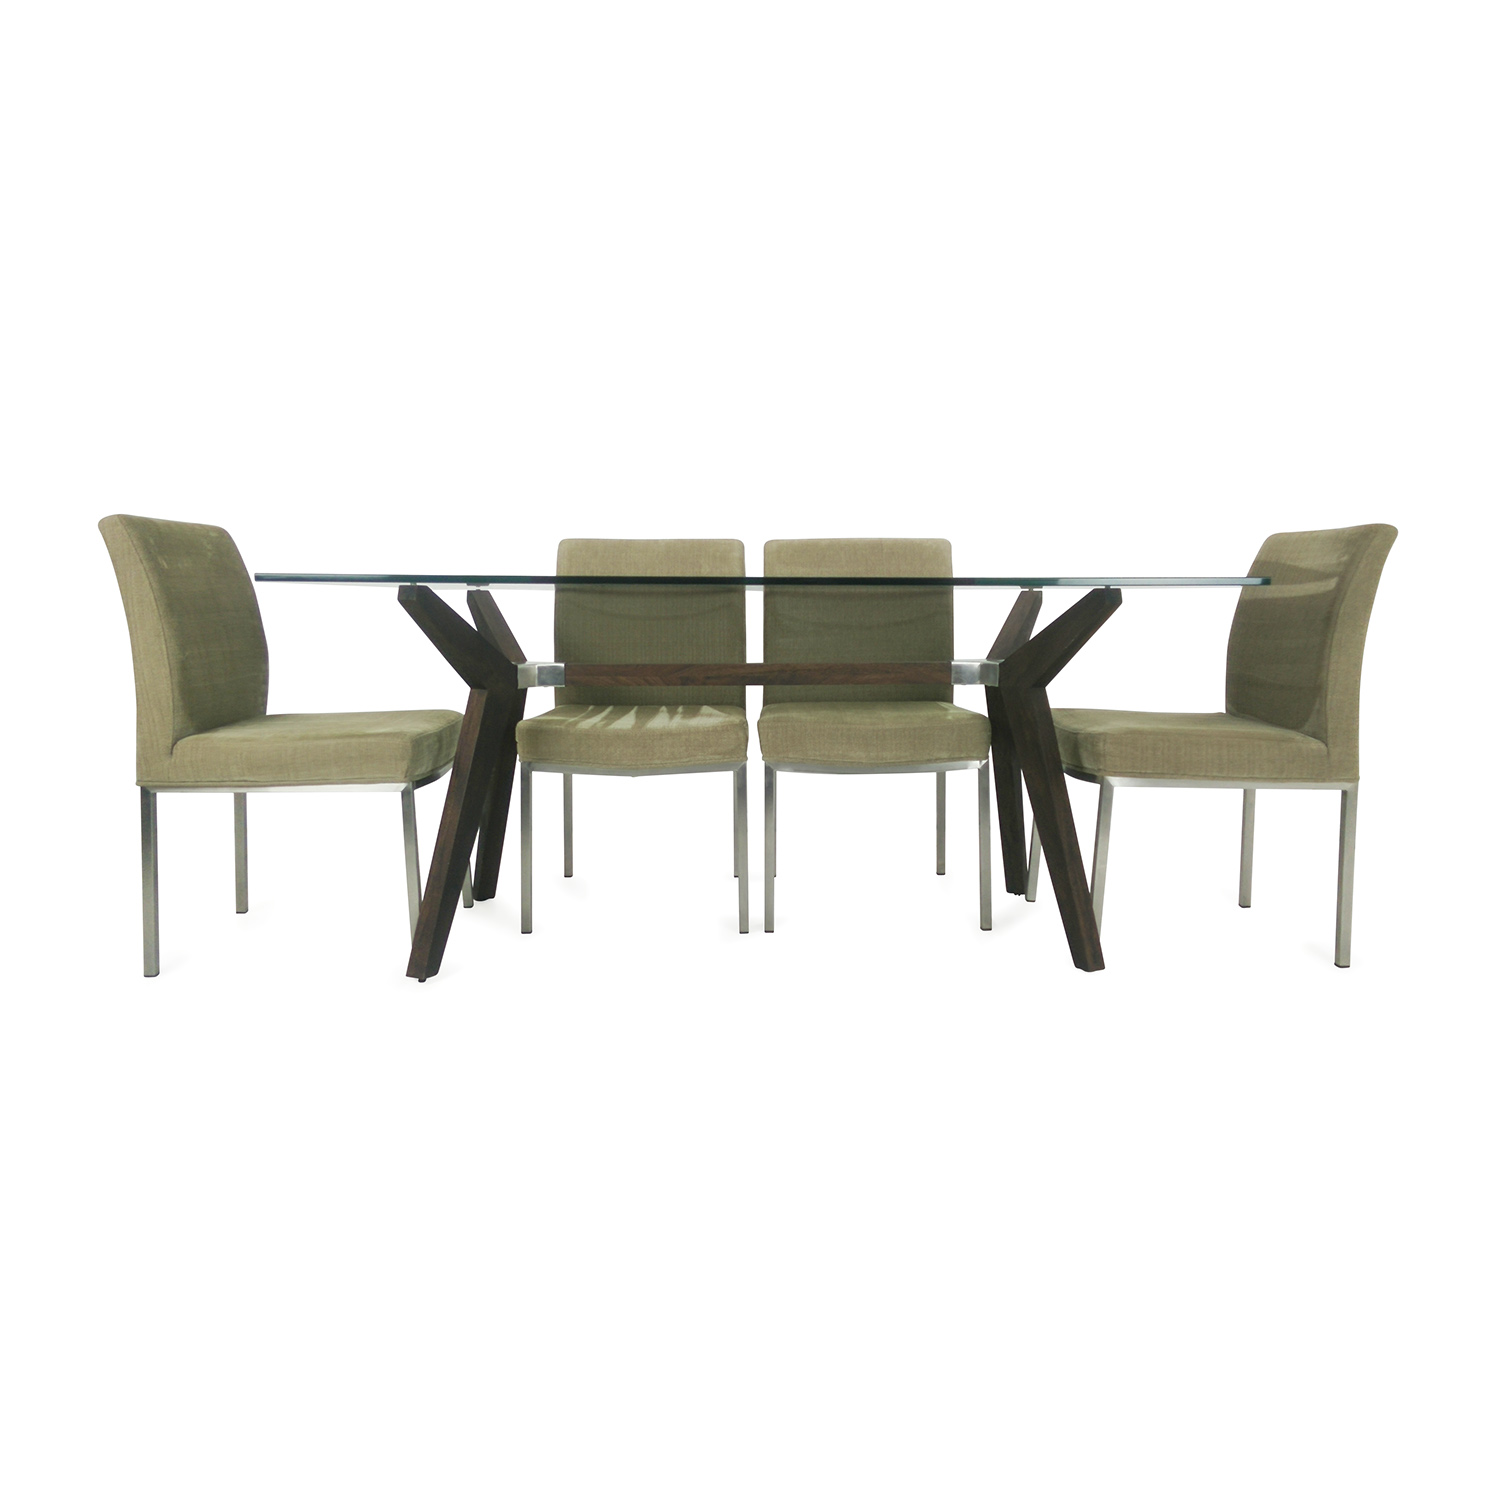 Crate & Barrel Dining Set Crate & Barrel